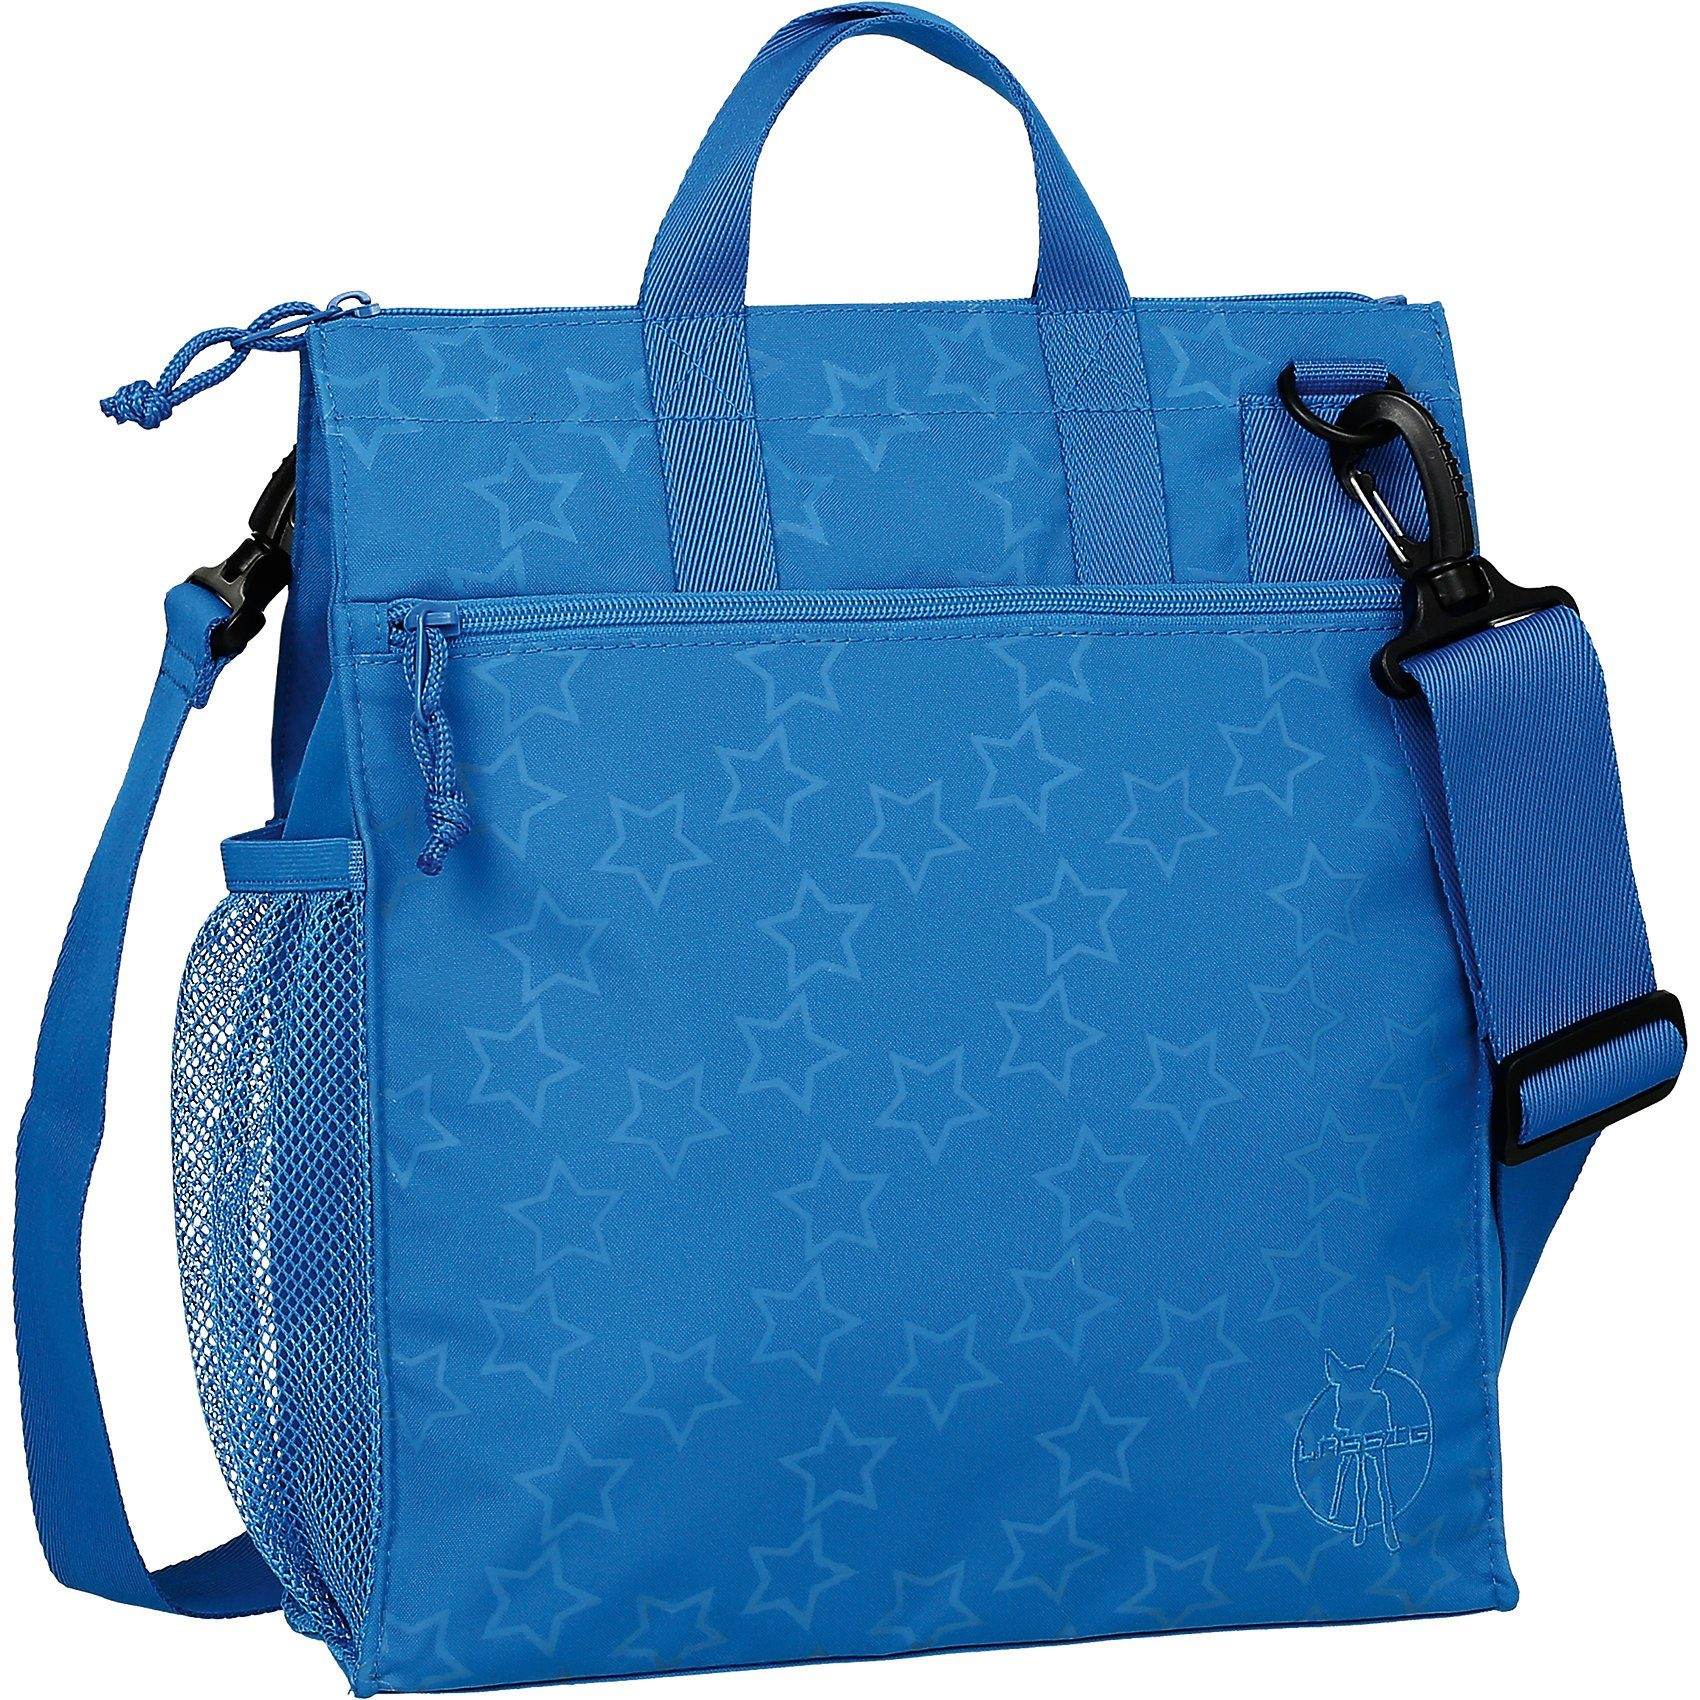 Lässig Wickeltasche Casual, Buggy Bag, Reflective Star, blue